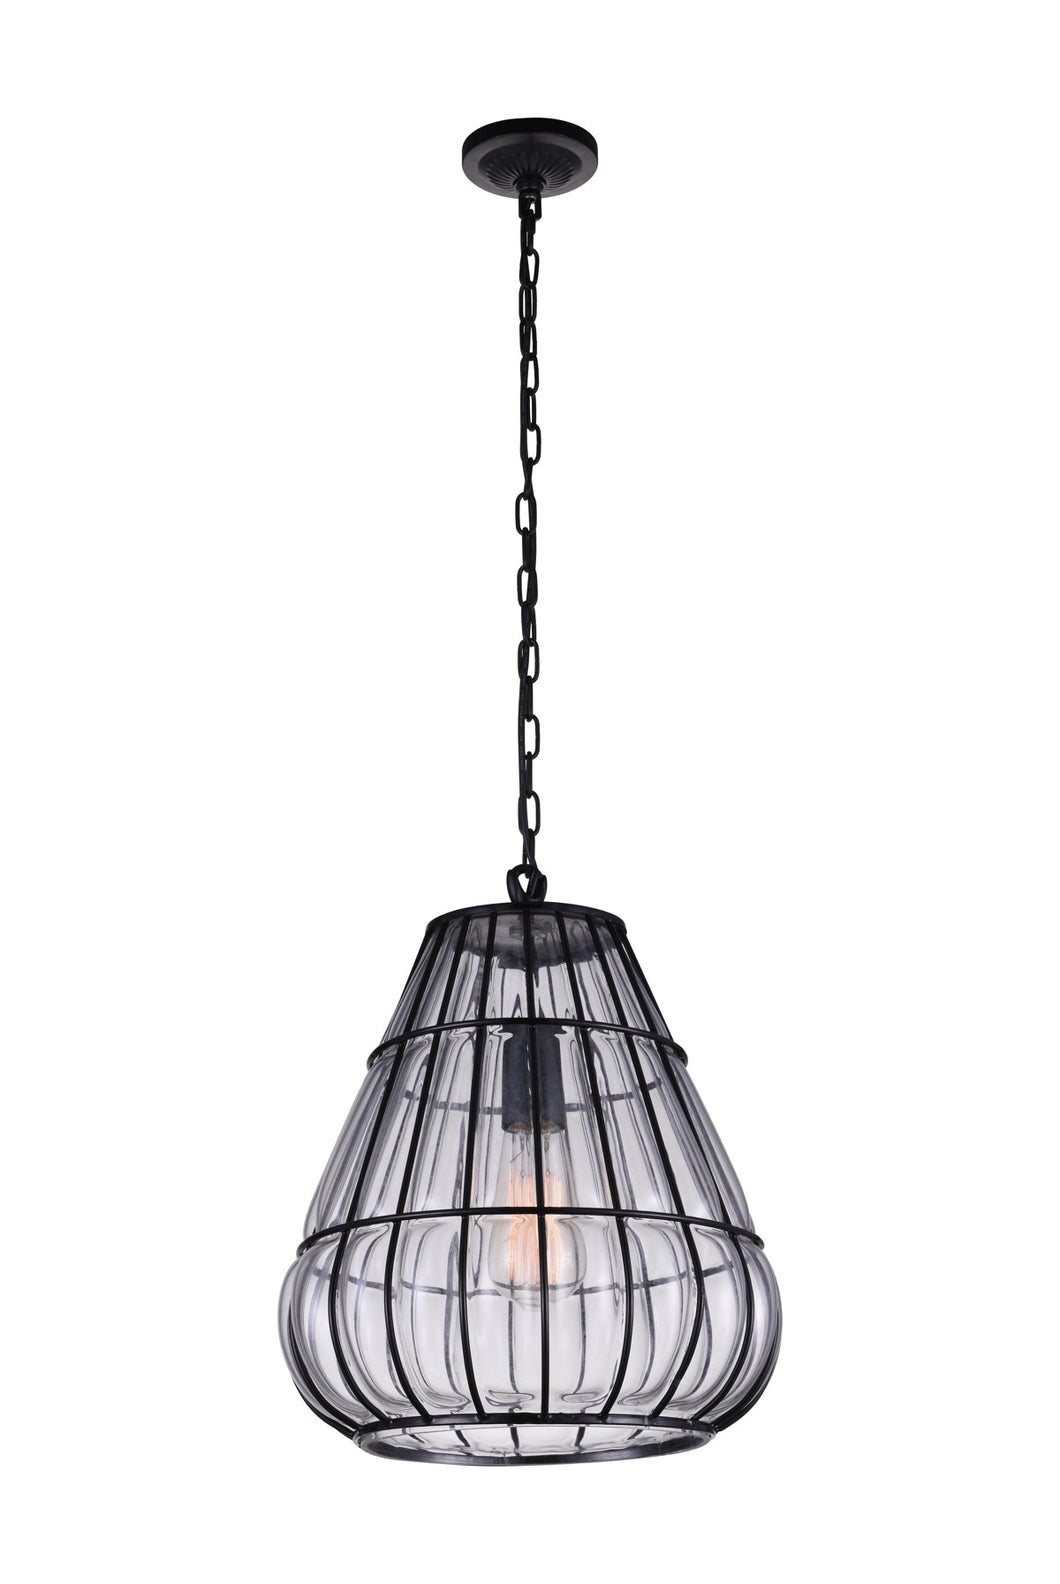 1 Light Down Pendant with Black & Wood finish